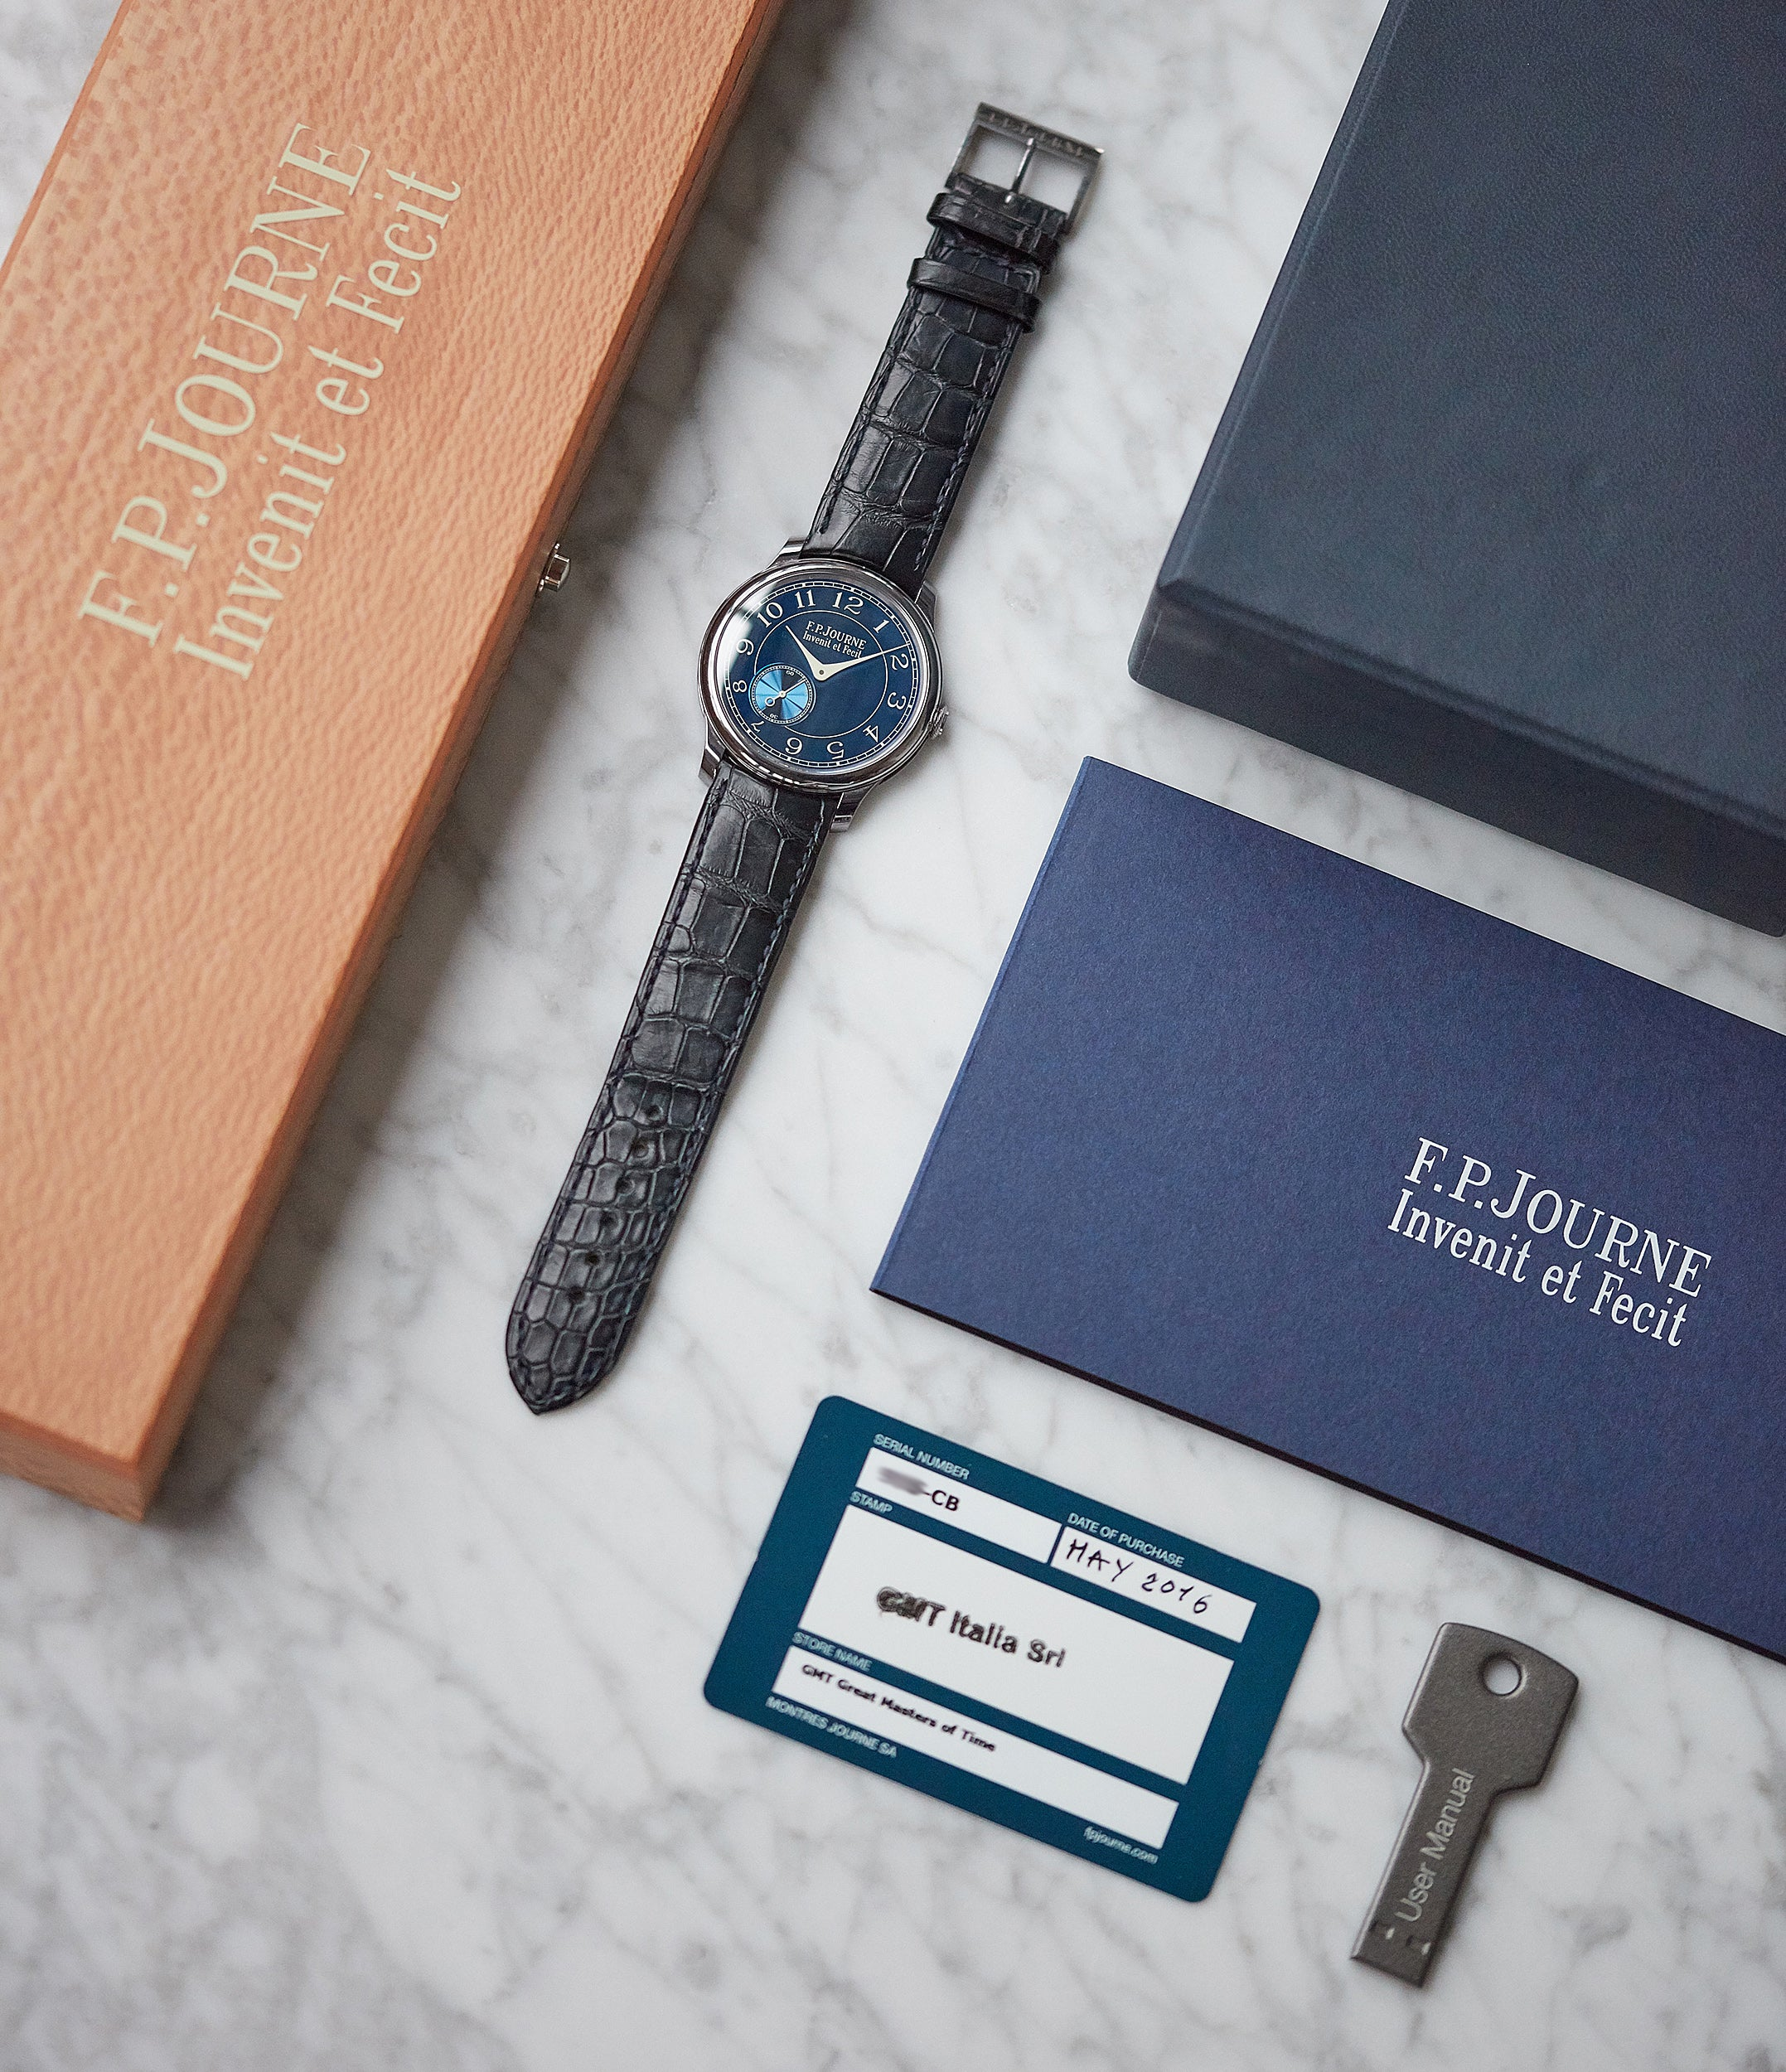 full set pre-owned F. P. Journe Chronometre Bleu tantalum blue dial rare dress watch for sale online at A Collected Man London approved reseller of independent watchmakers